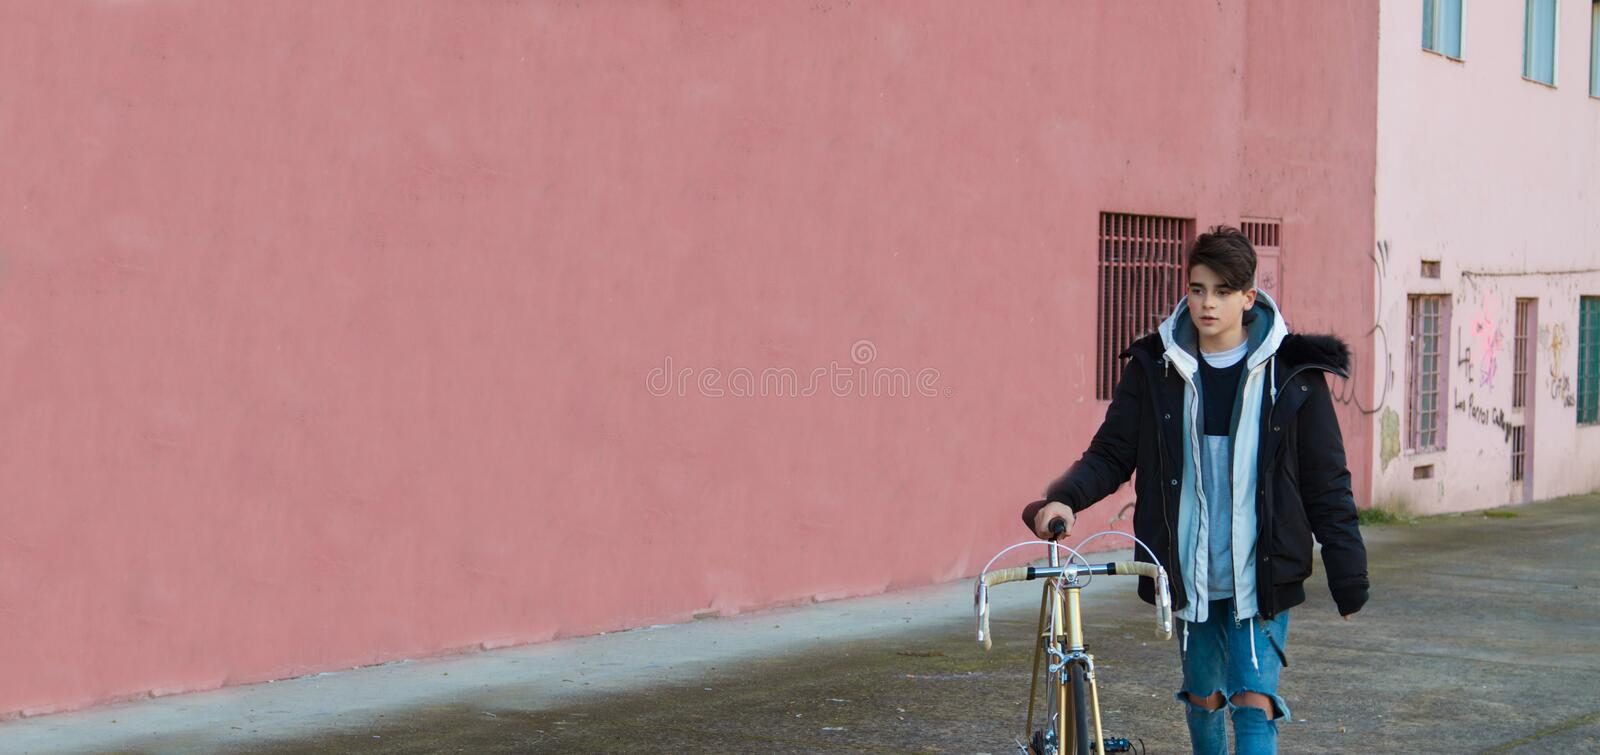 Teenager with bicycle on the street outdoors royalty free stock photography